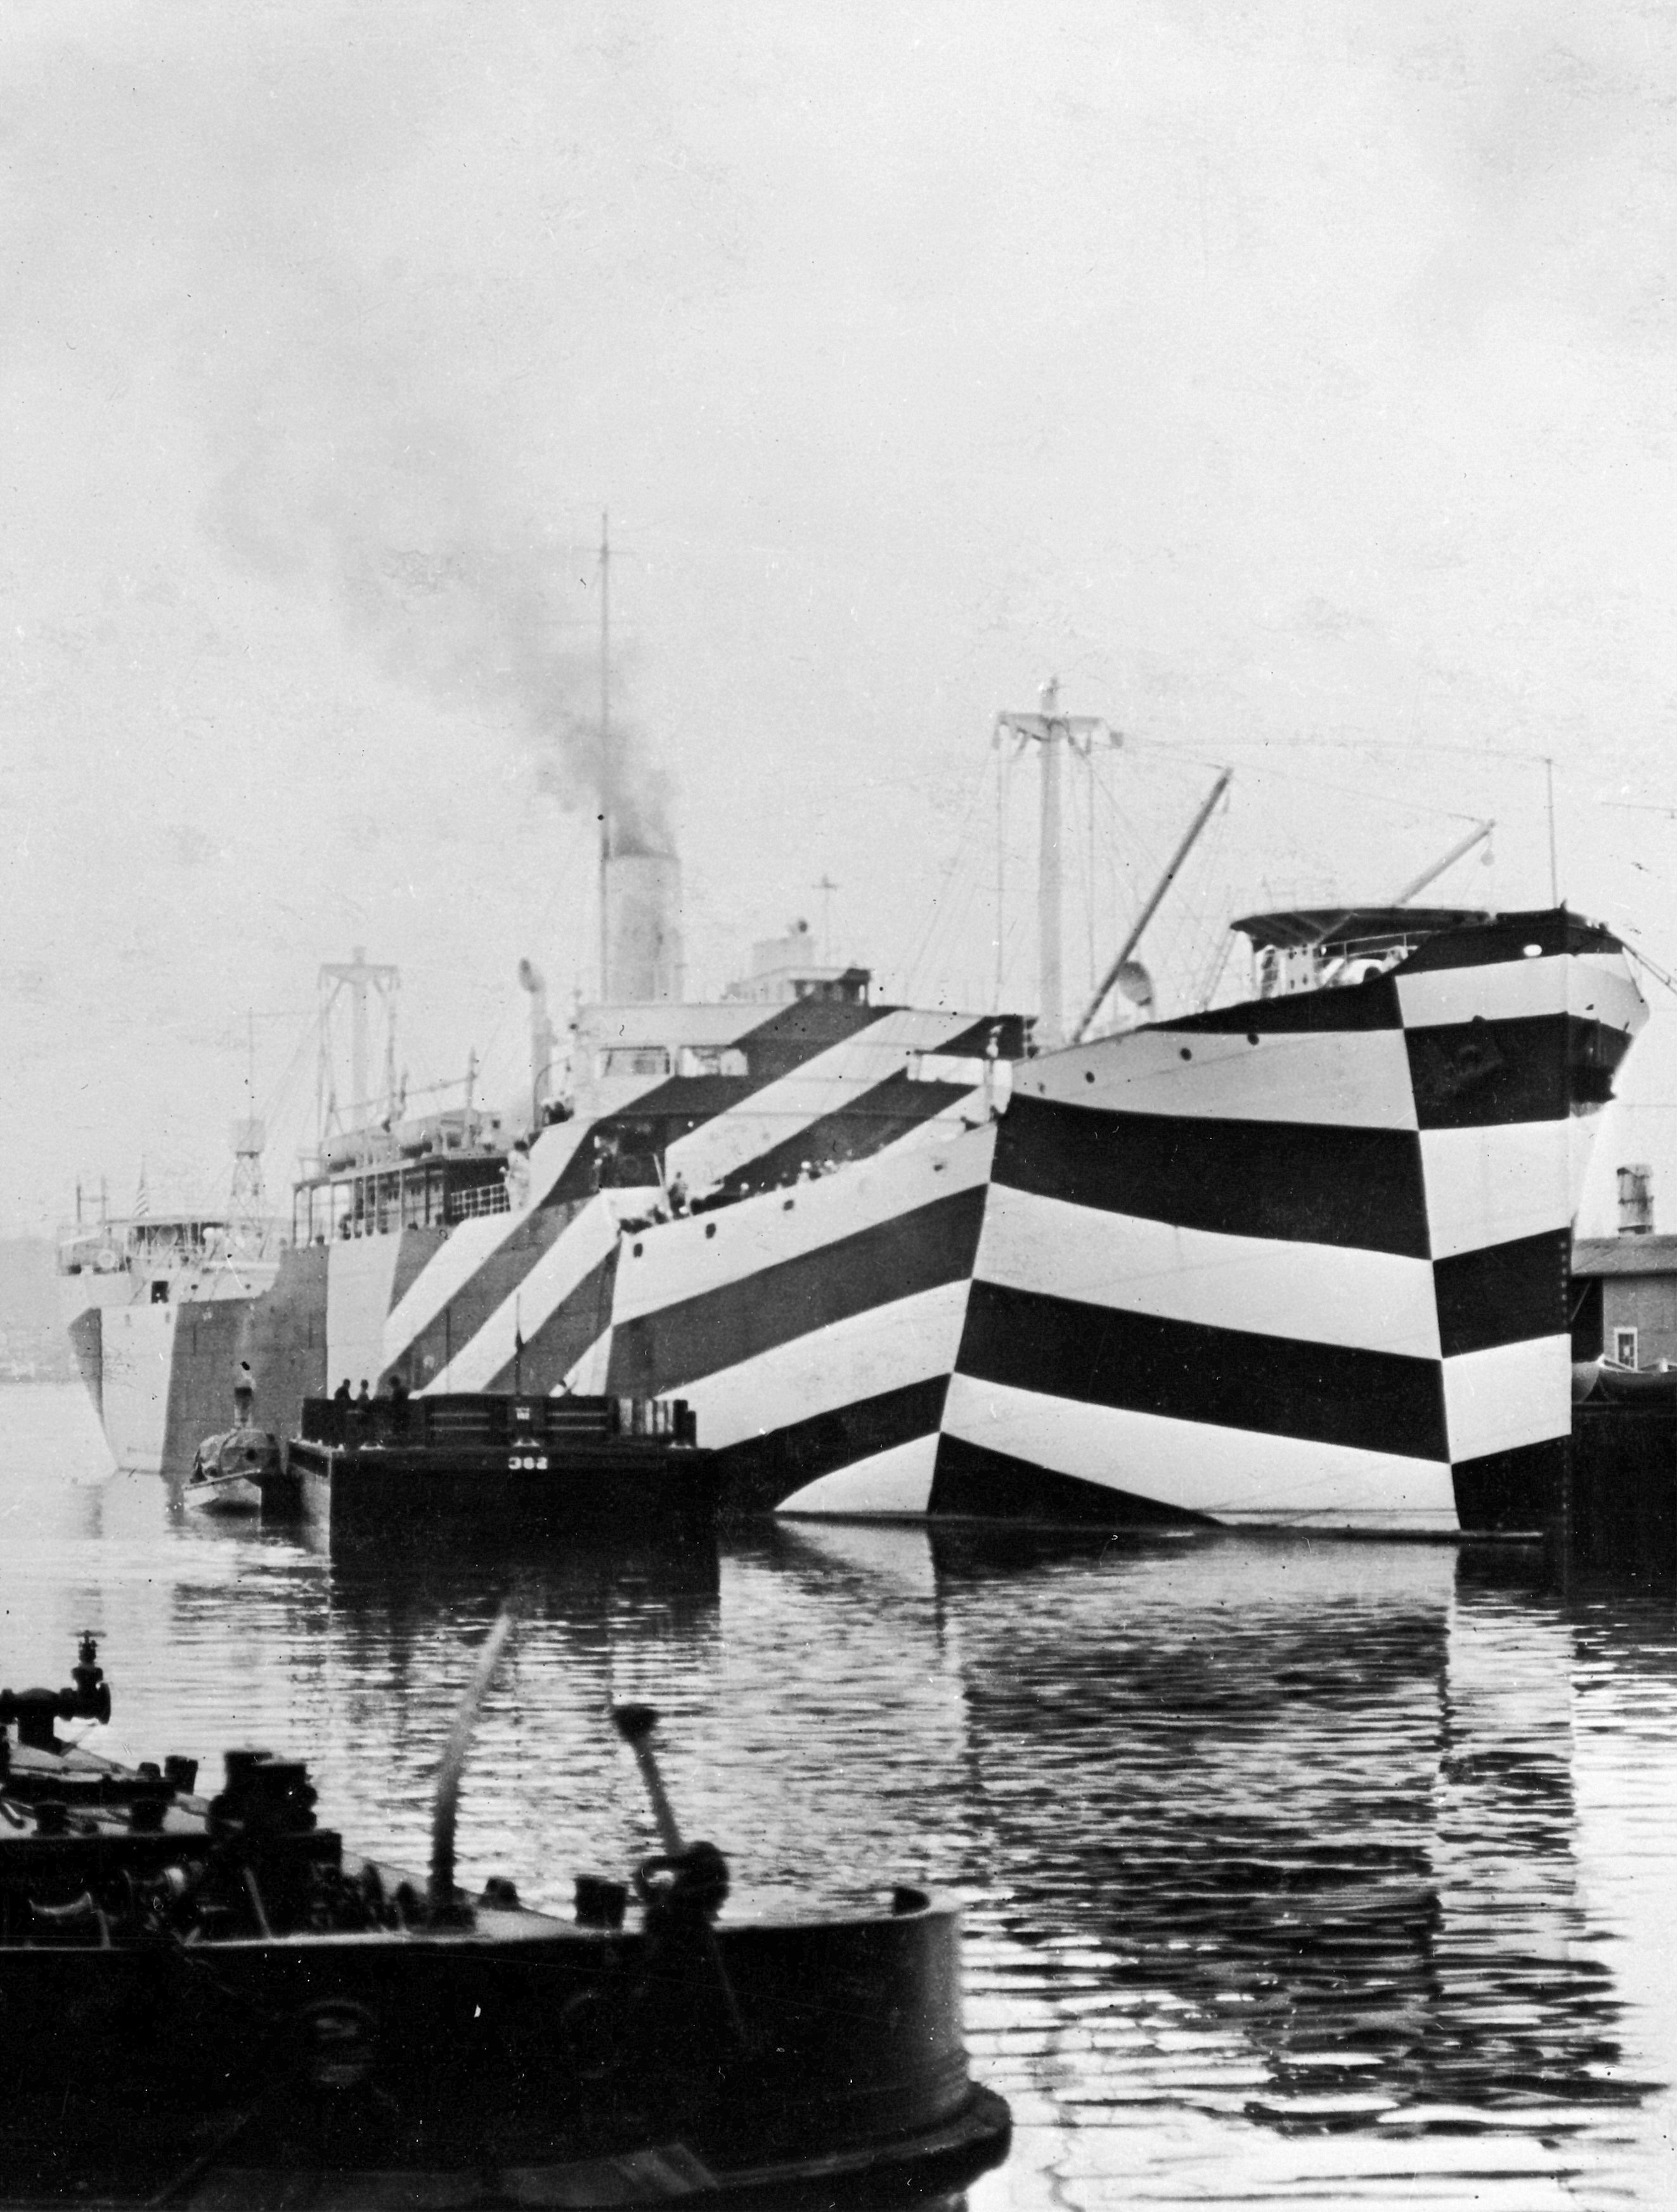 Dazzle painted battleships